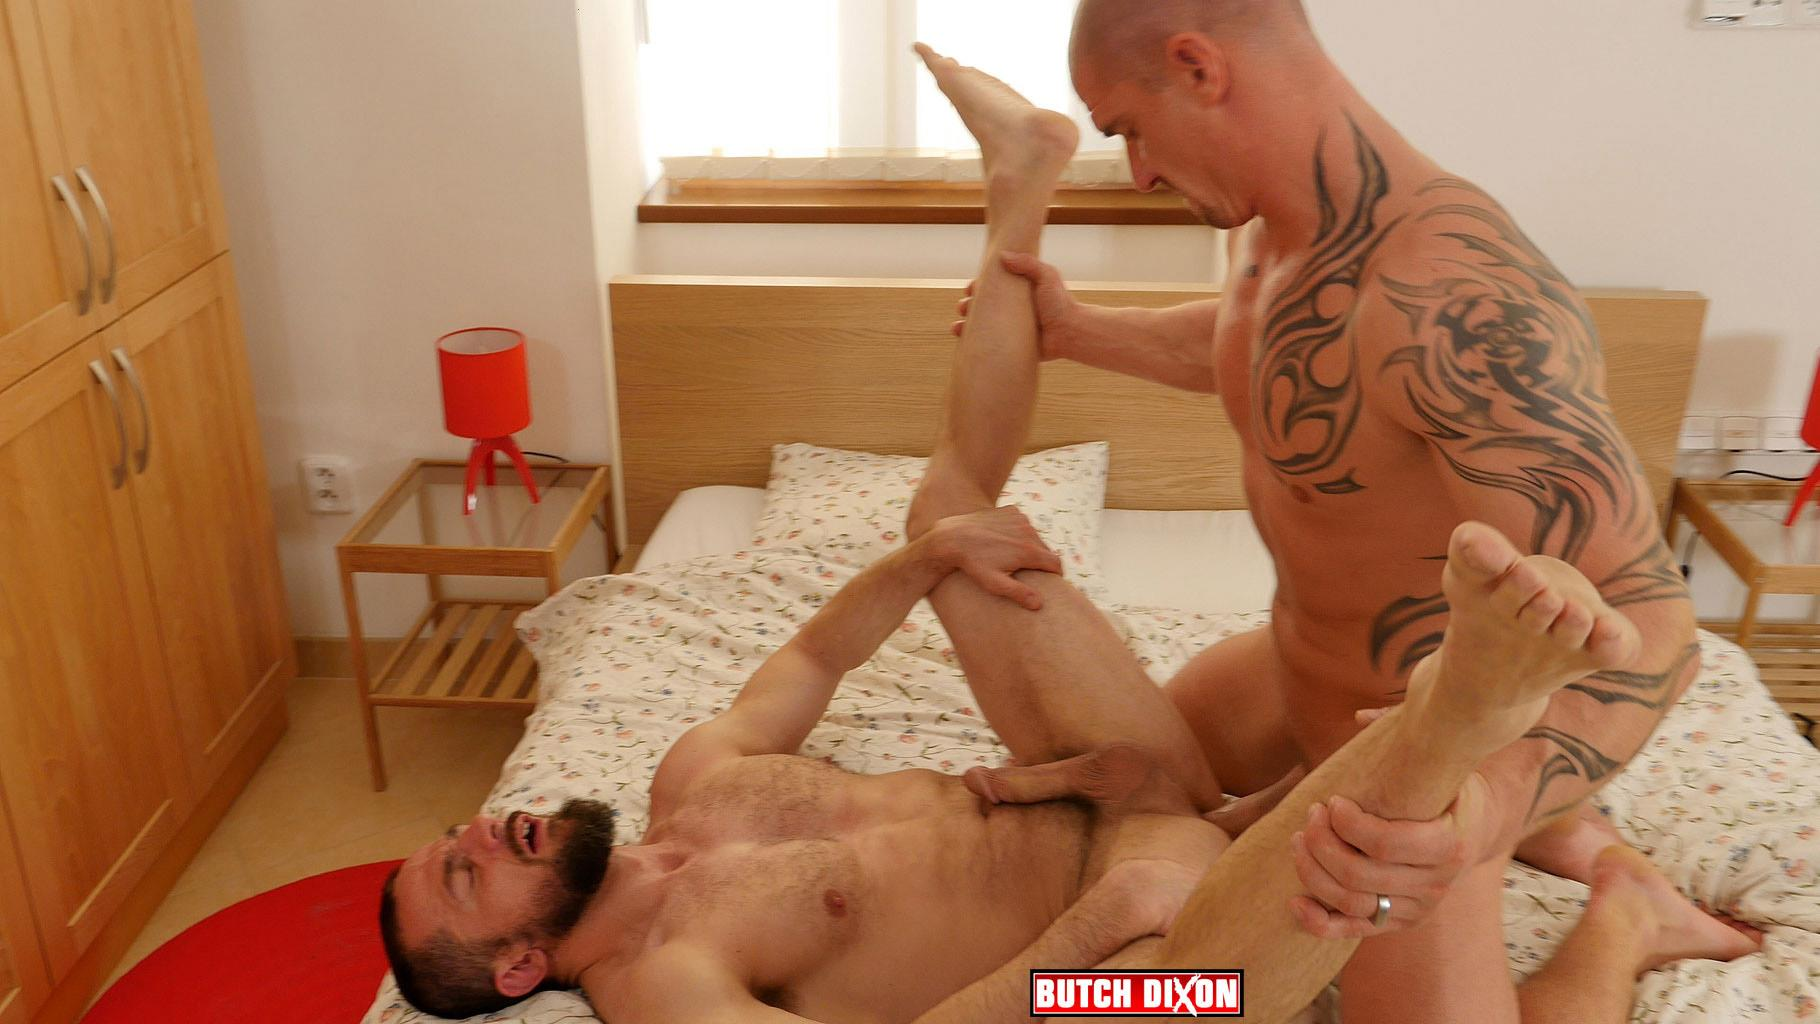 Butch Dixon Erik Lenn and Mike Bourne Masculine Guys Fucking Bareback Amateur Gay Porn 22 Beefy Masculine Guys Fucking Bareback With A Big Uncut Cock